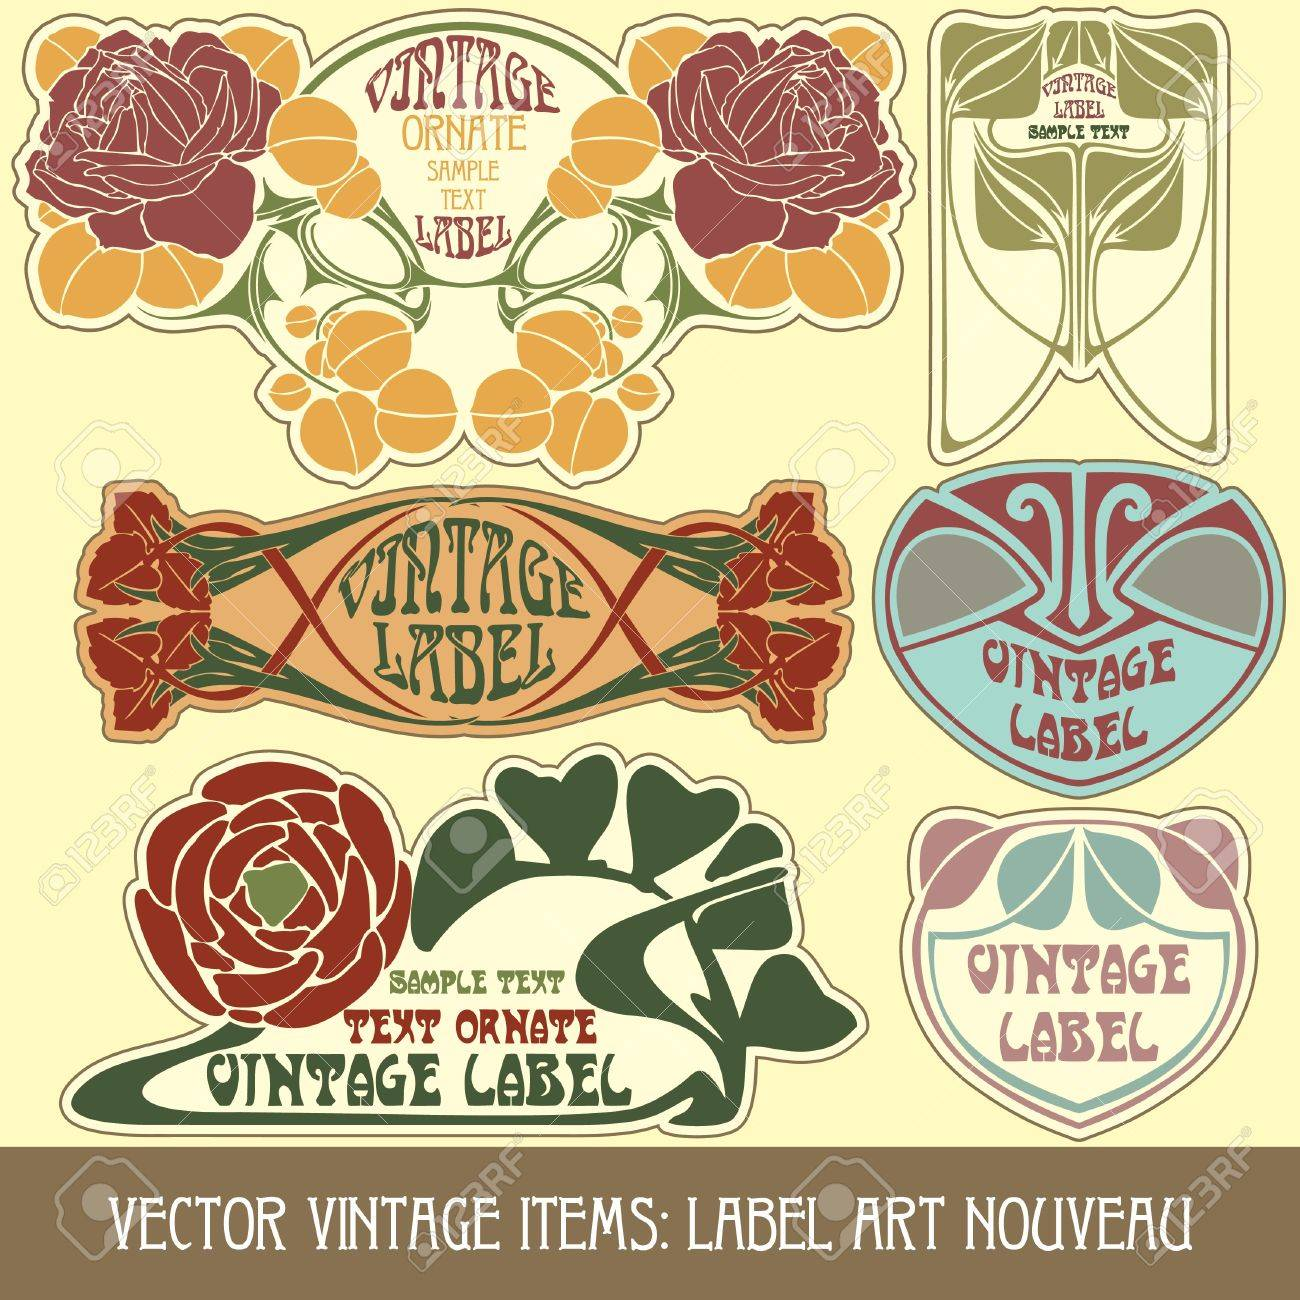 vector vintage items: label art nouveau Stock Vector - 11666864